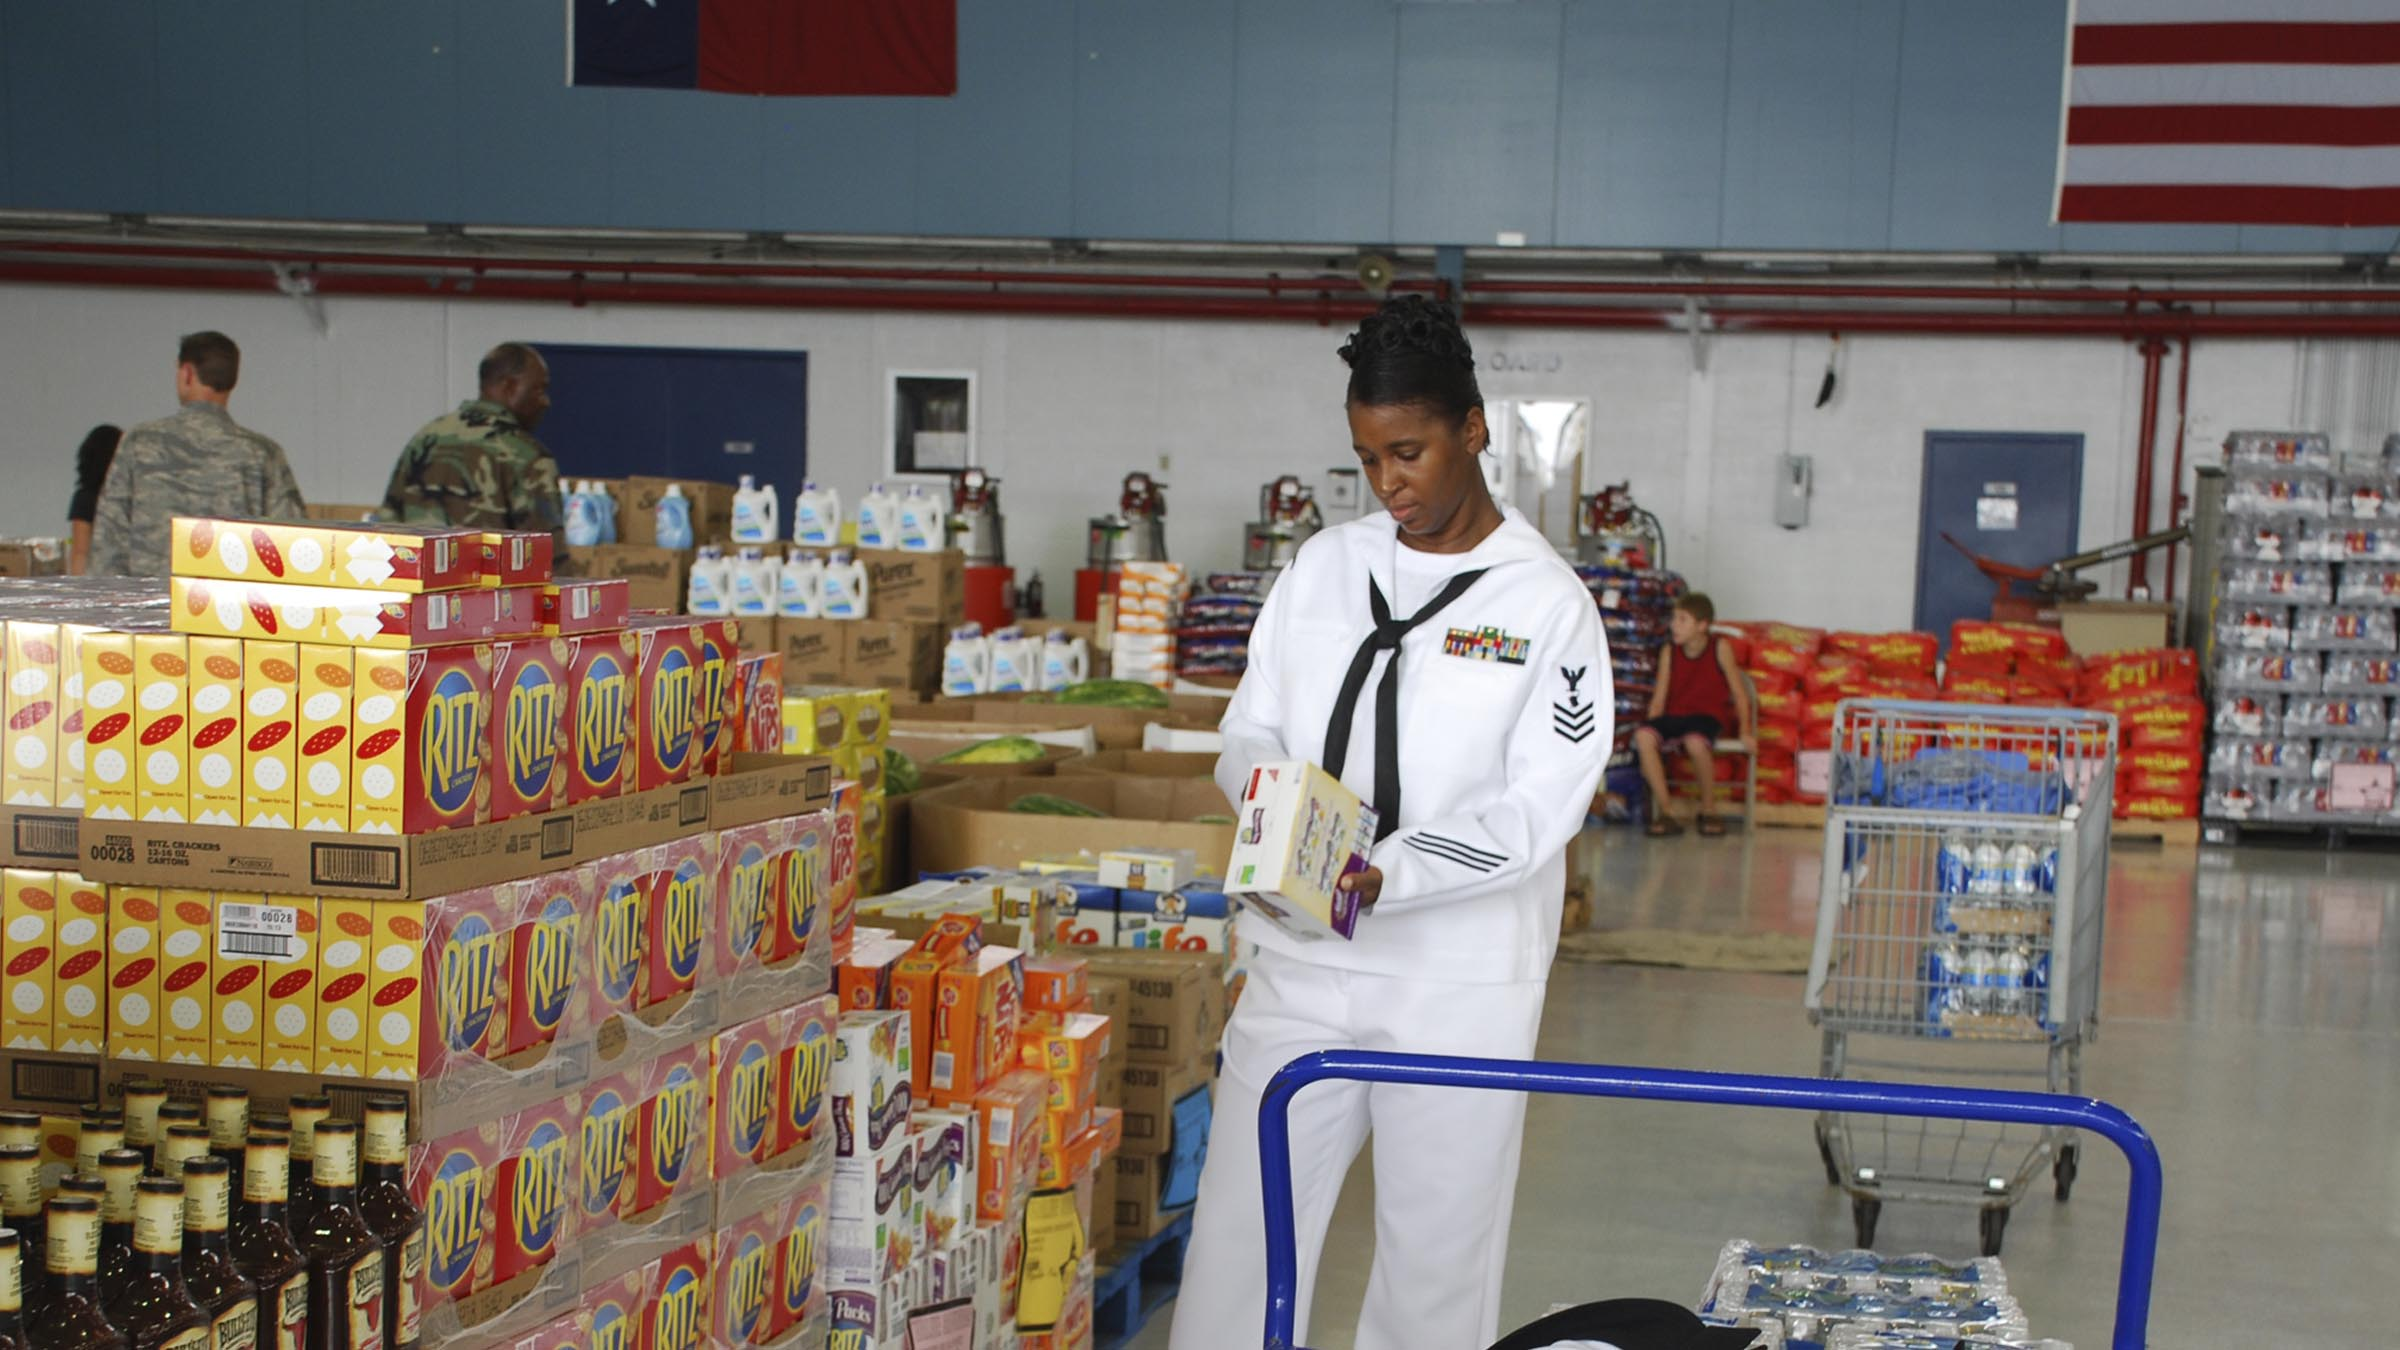 Service member checks nutritional information on box of crackers.